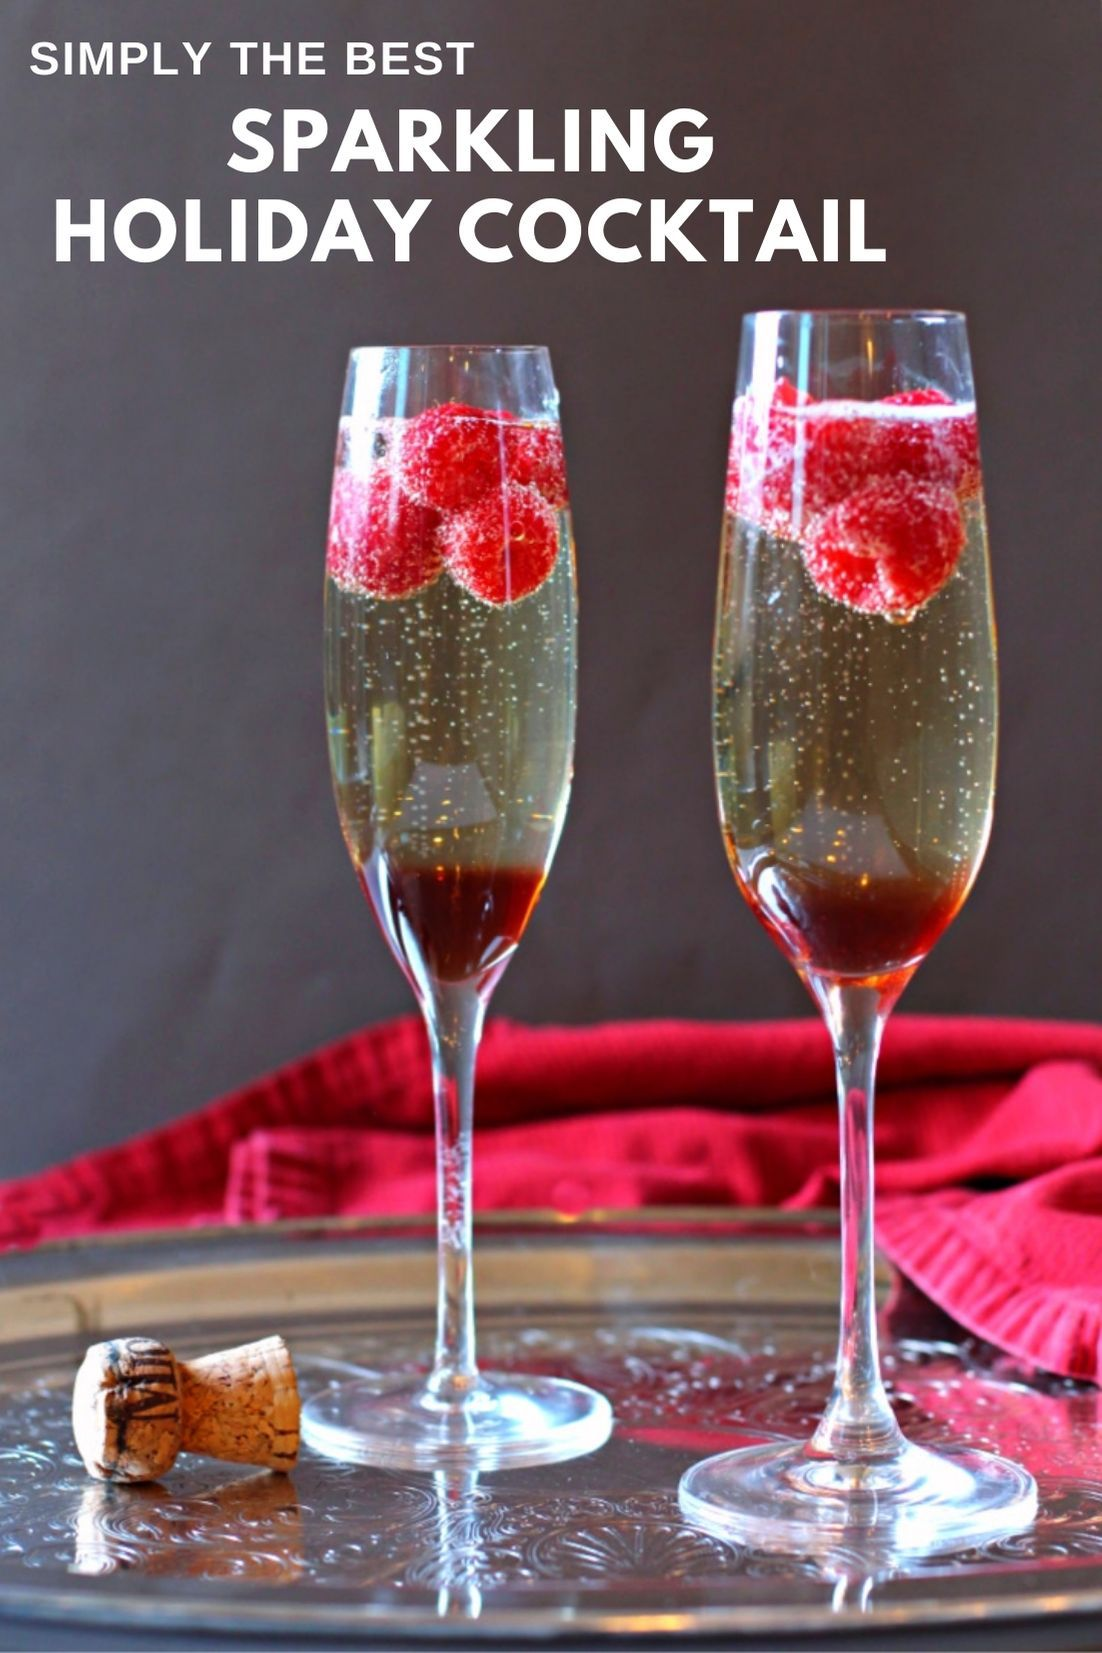 Prosecco Cocktail Made With Chambord Raspberry Liqueur And Fresh Raspberries Recipe In 2020 Raspberry Liqueur Prosecco Cocktails Champagne Recipes Cocktails